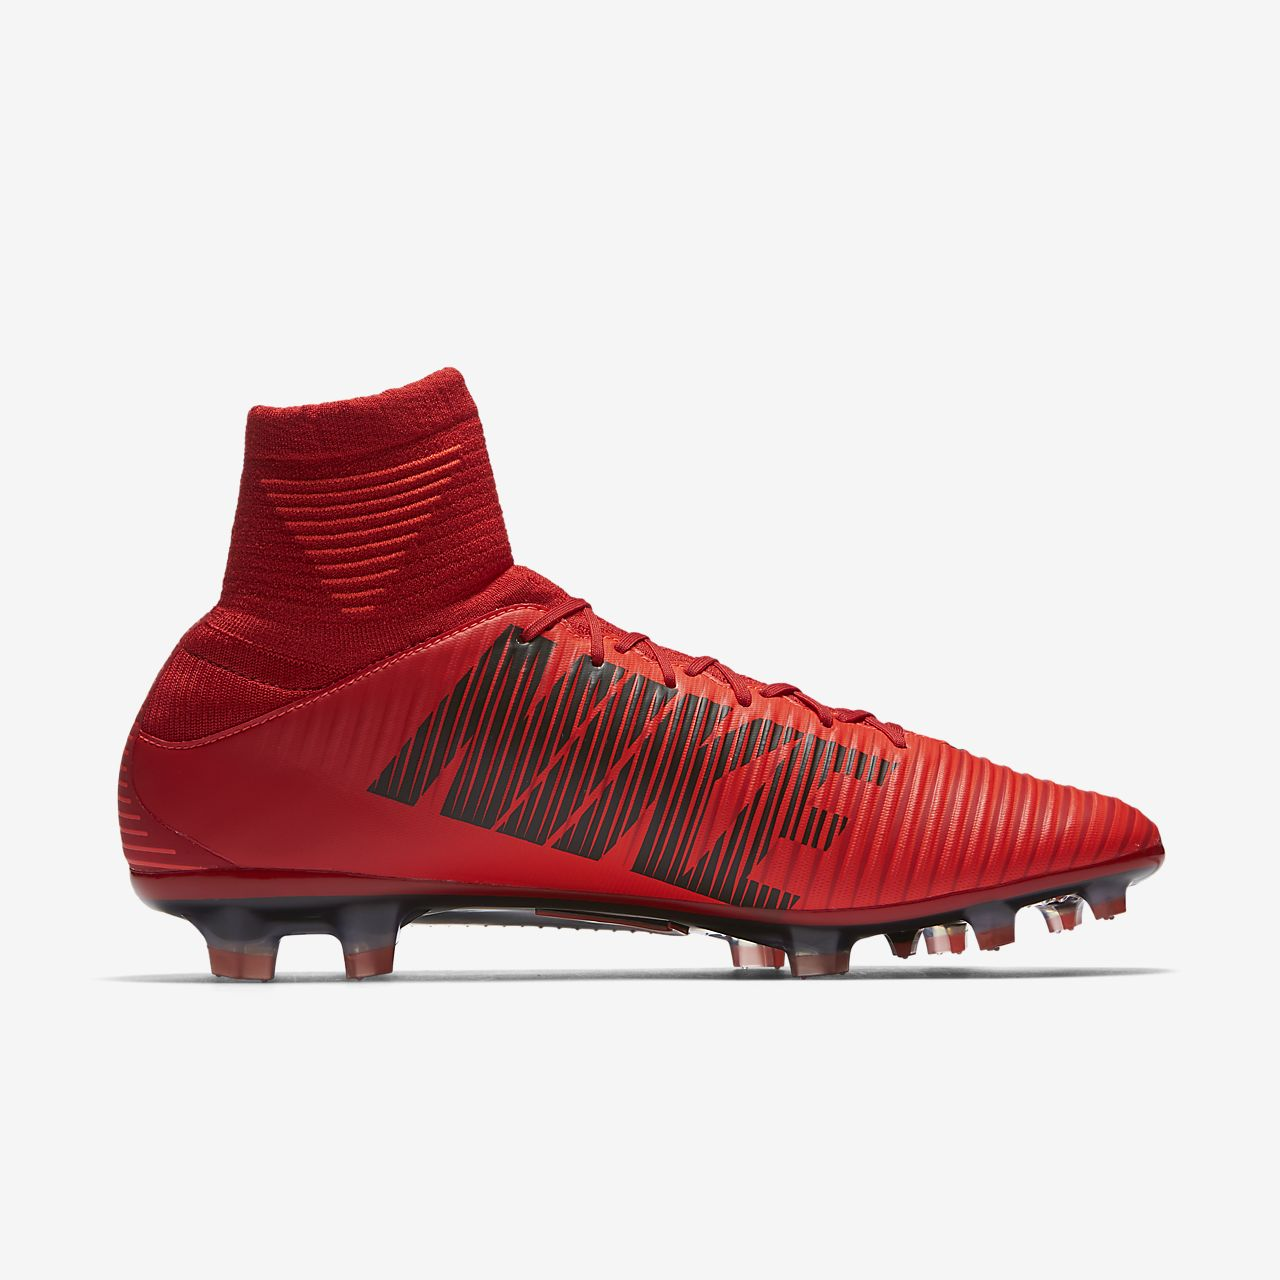 ... Nike Mercurial Veloce III Dynamic Fit Firm-Ground Soccer Cleat